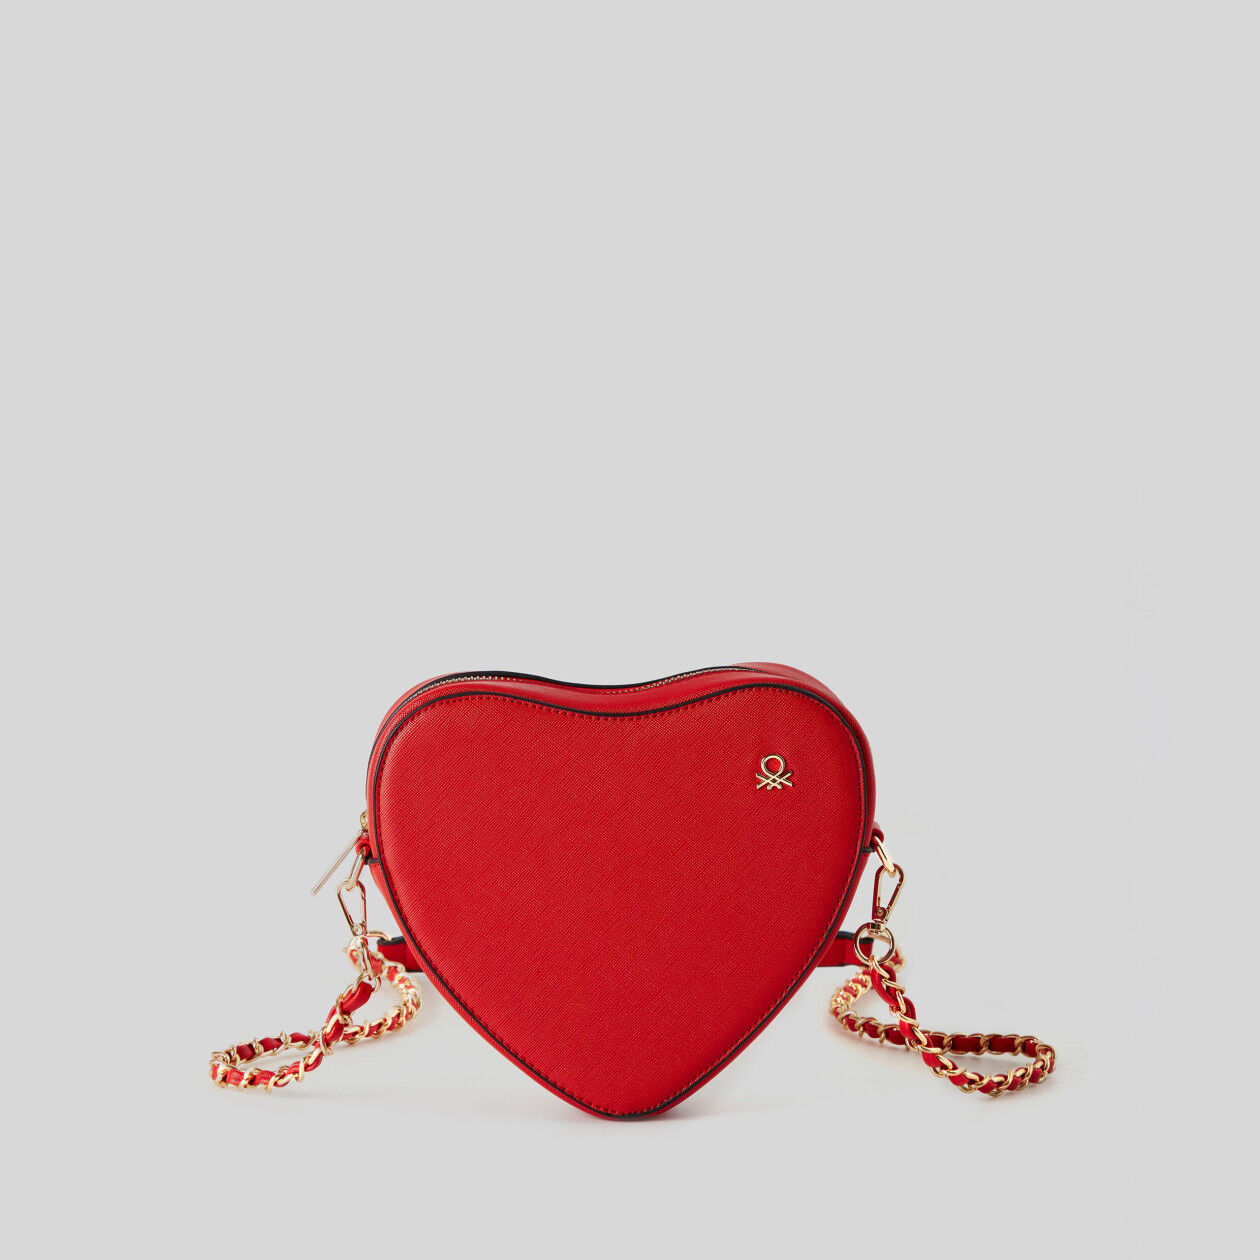 Heart purse with crossbody strap